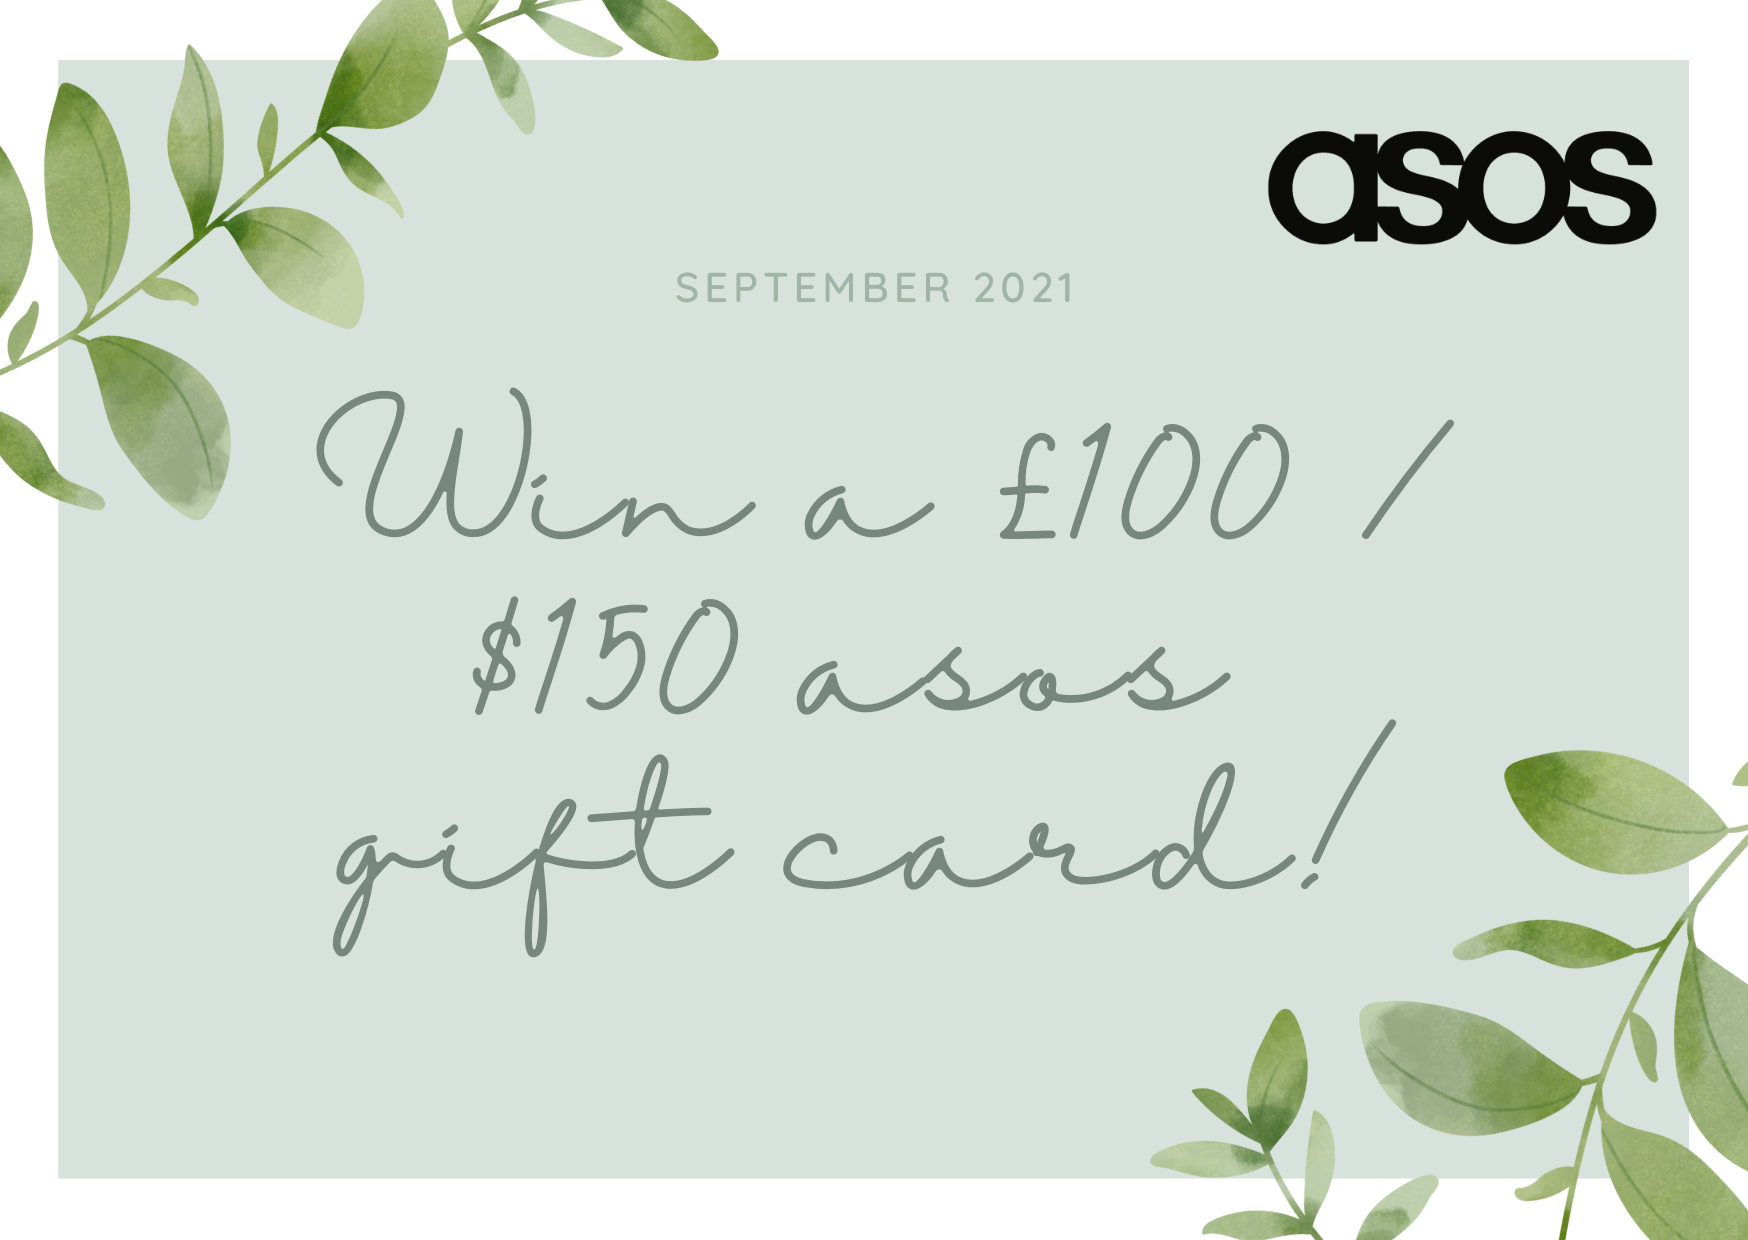 Win a £100 / $150 ASOS gift card to spend on clothes, accessories, and homeware! Giveaway